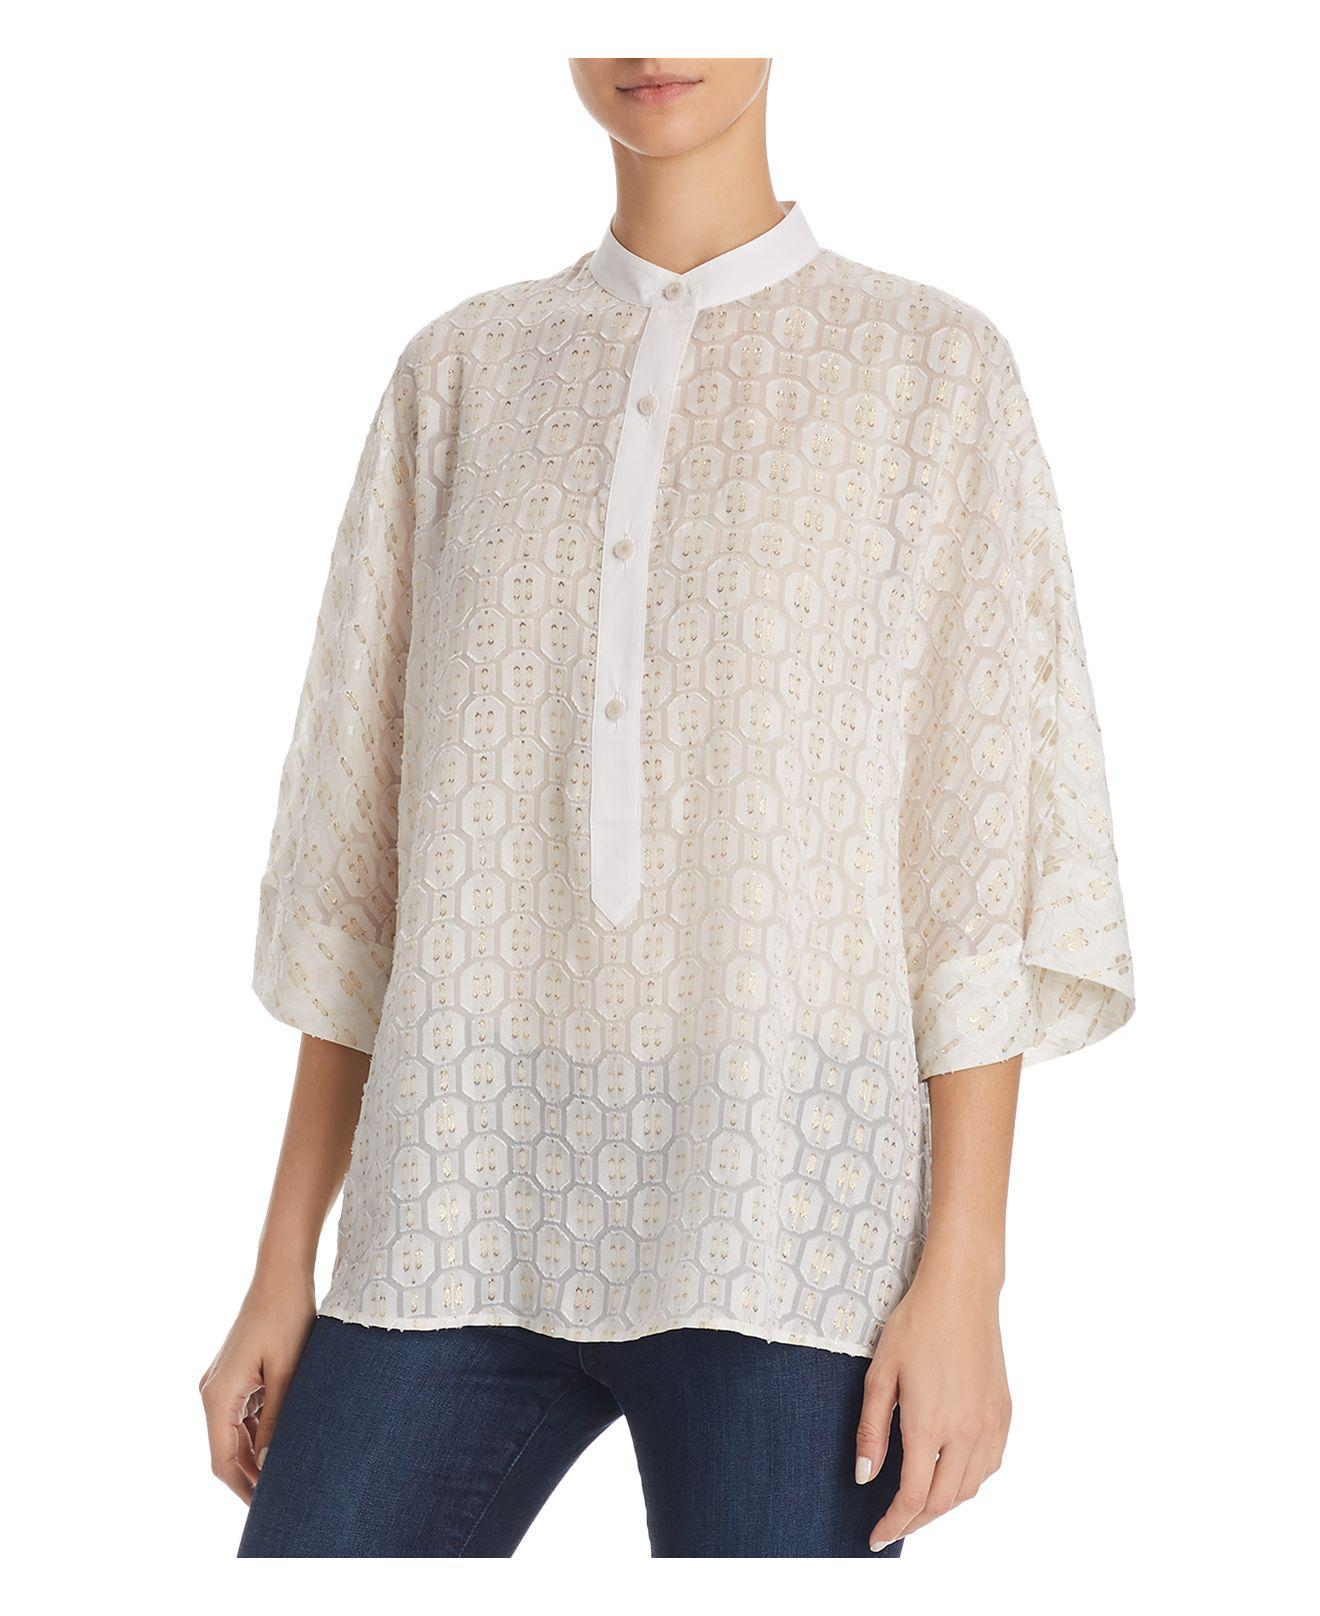 Cream top Tory Burch Clearance Prices Best Prices Cheap Price Multi Coloured Free Shipping Cheap Quality Looking For For Sale F0TWPpDfC